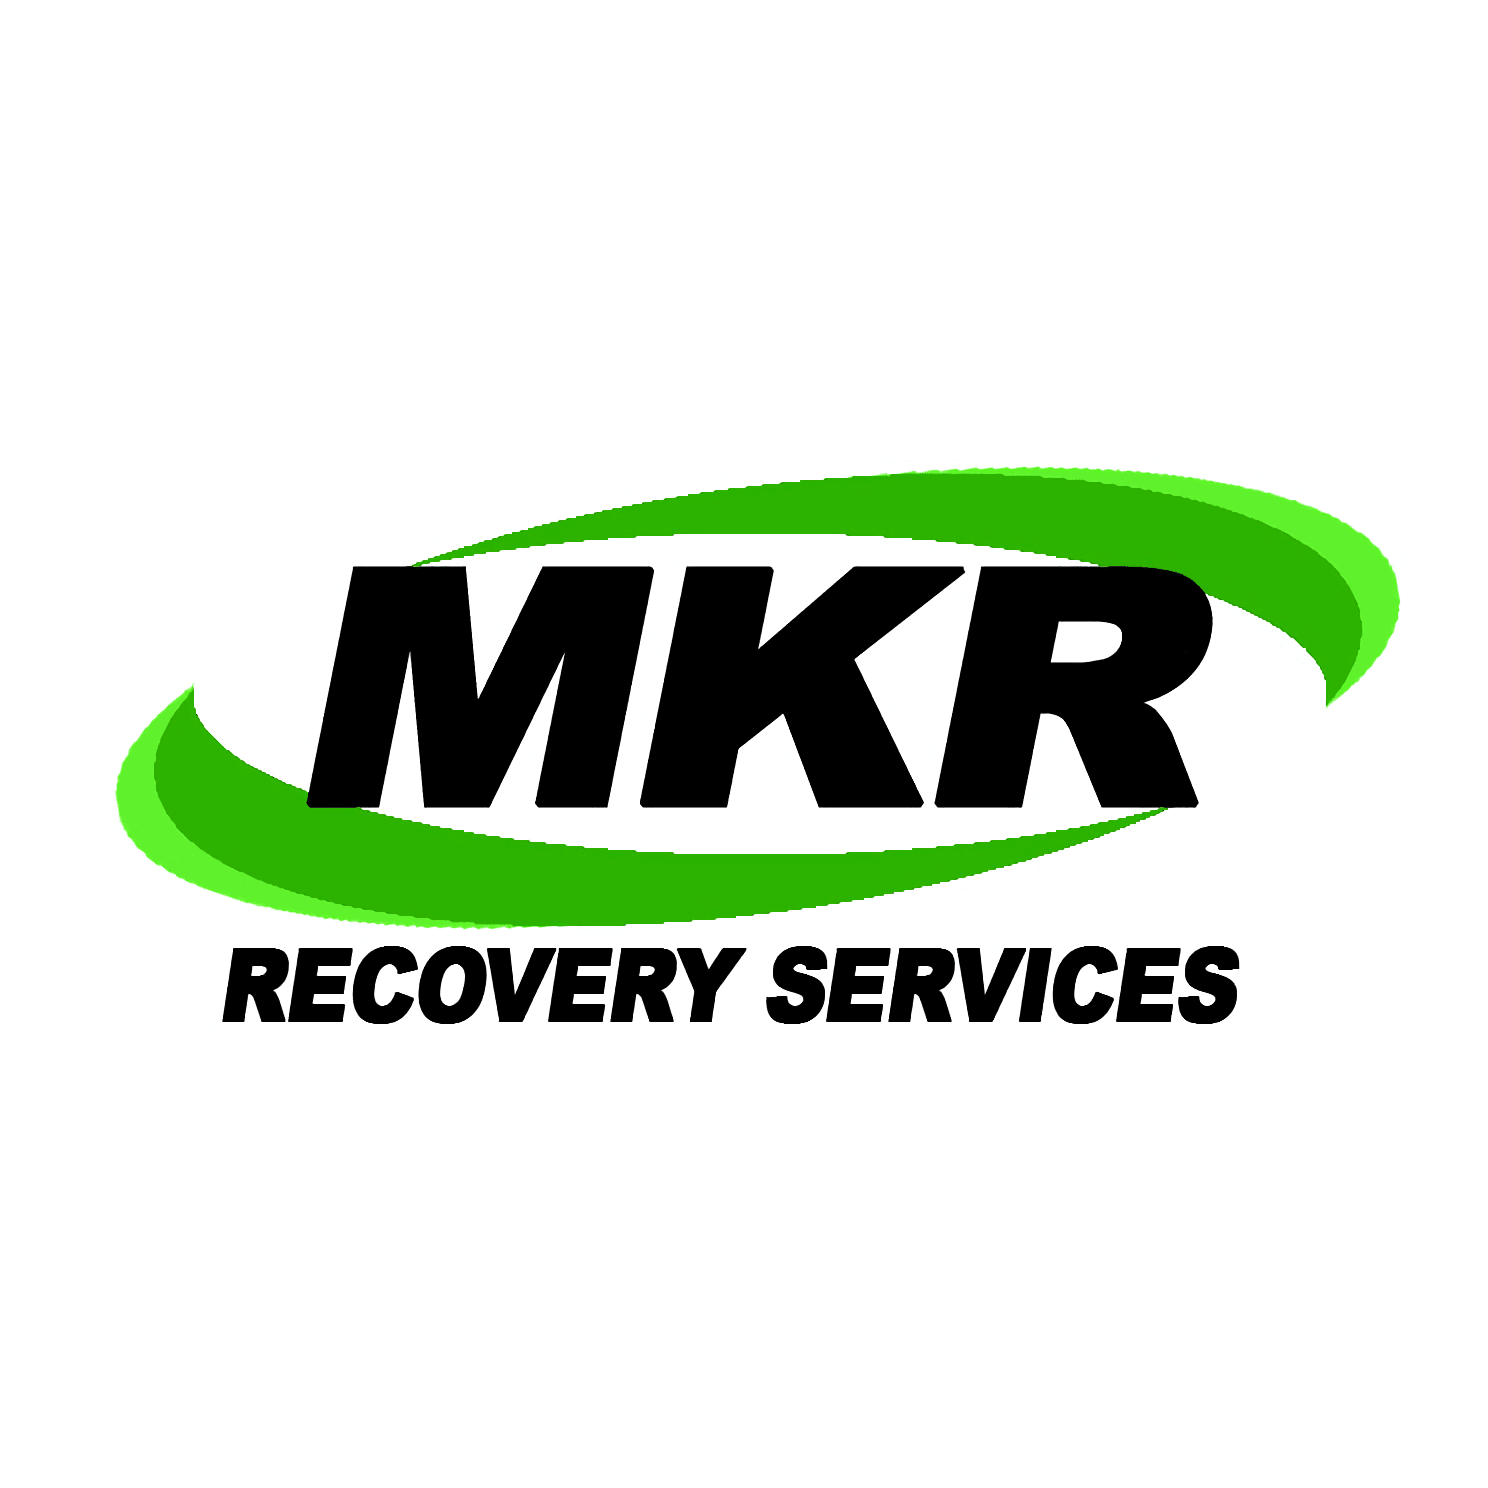 MKR Recovery Services Ltd - Ramsgate, Kent CT12 5AT - 01843 621070 | ShowMeLocal.com